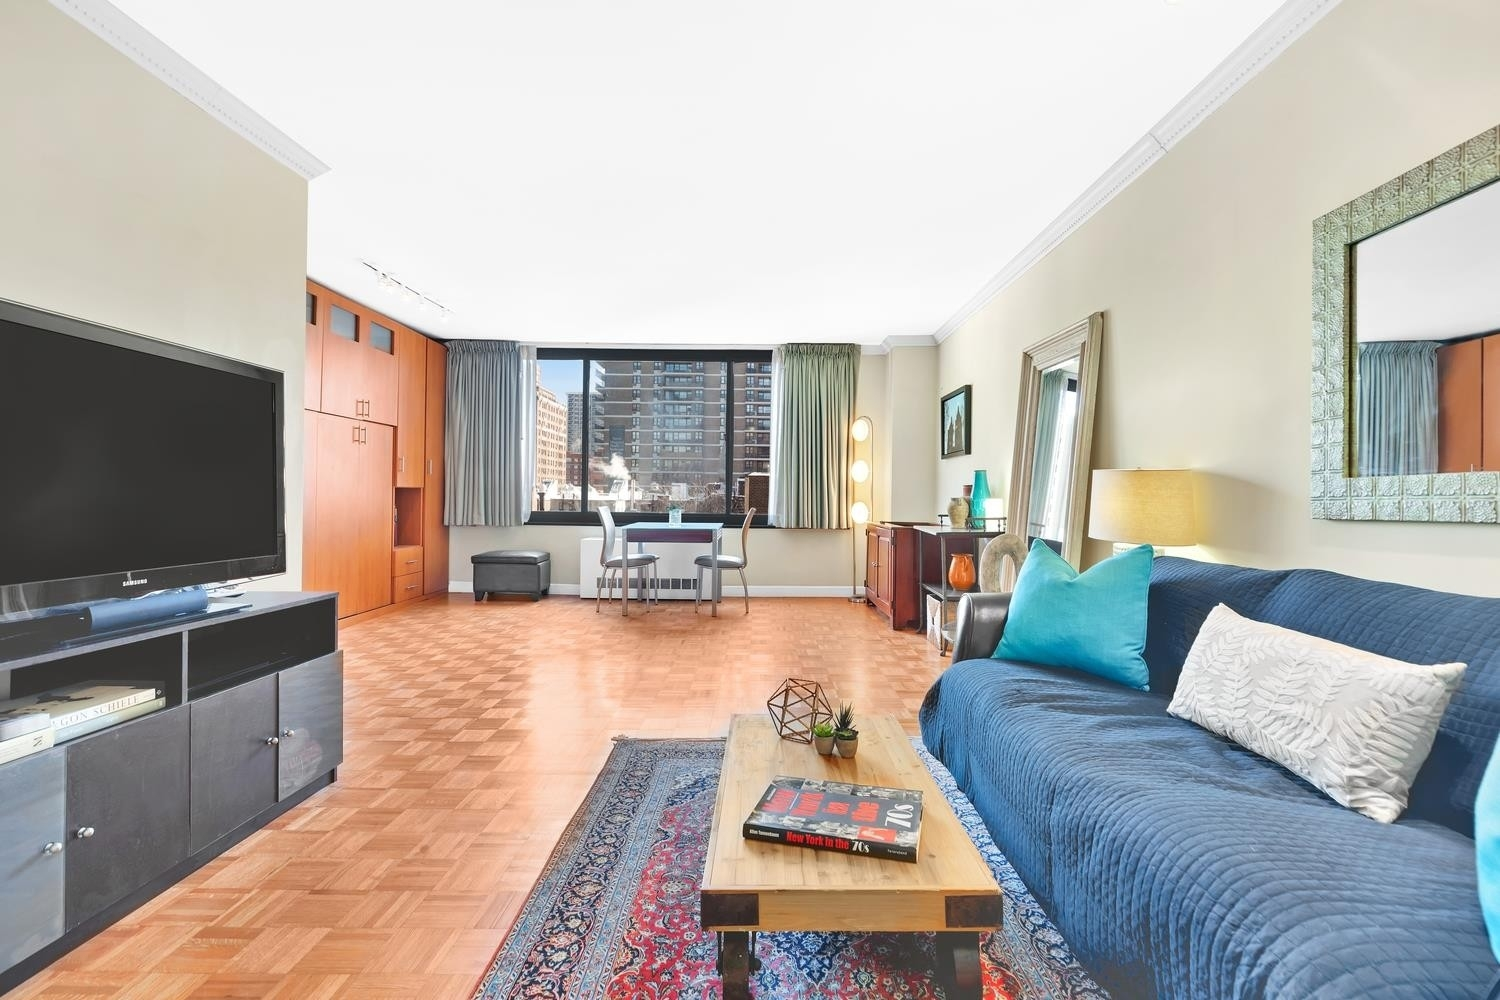 Condominium for Sale at Princeton House, 215 W 95TH ST , 8P Upper West Side, New York, NY 10025